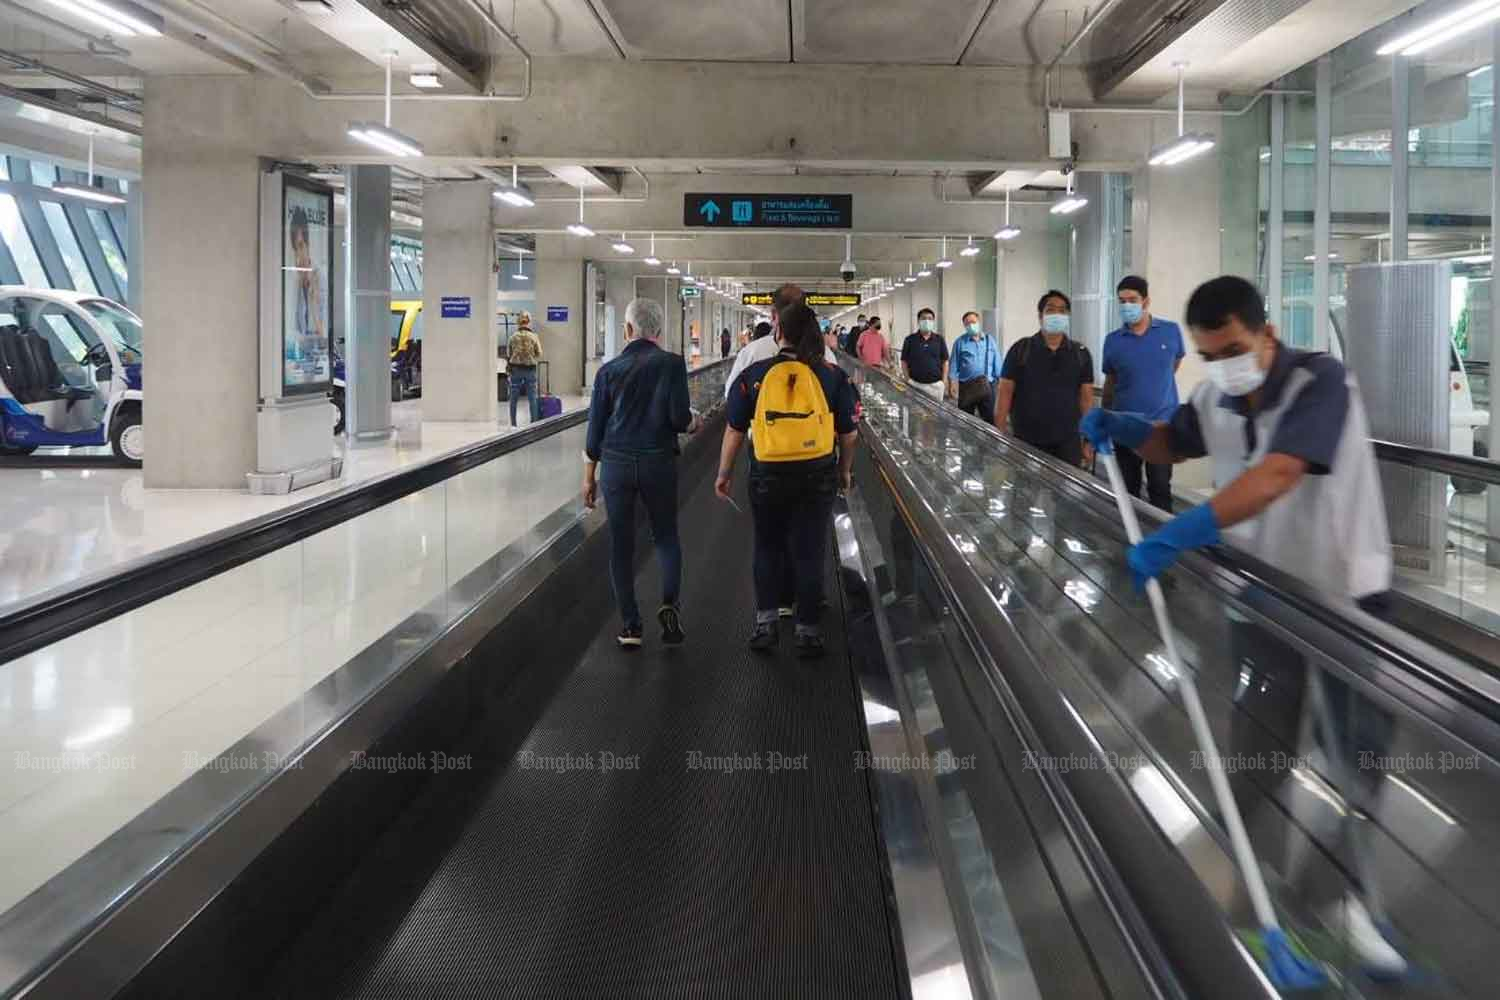 A cleaner keeps the moving walkway hygienic for travellers at Suvarnabhumi airport. (Photo by Dusida Worrachaddejchai)